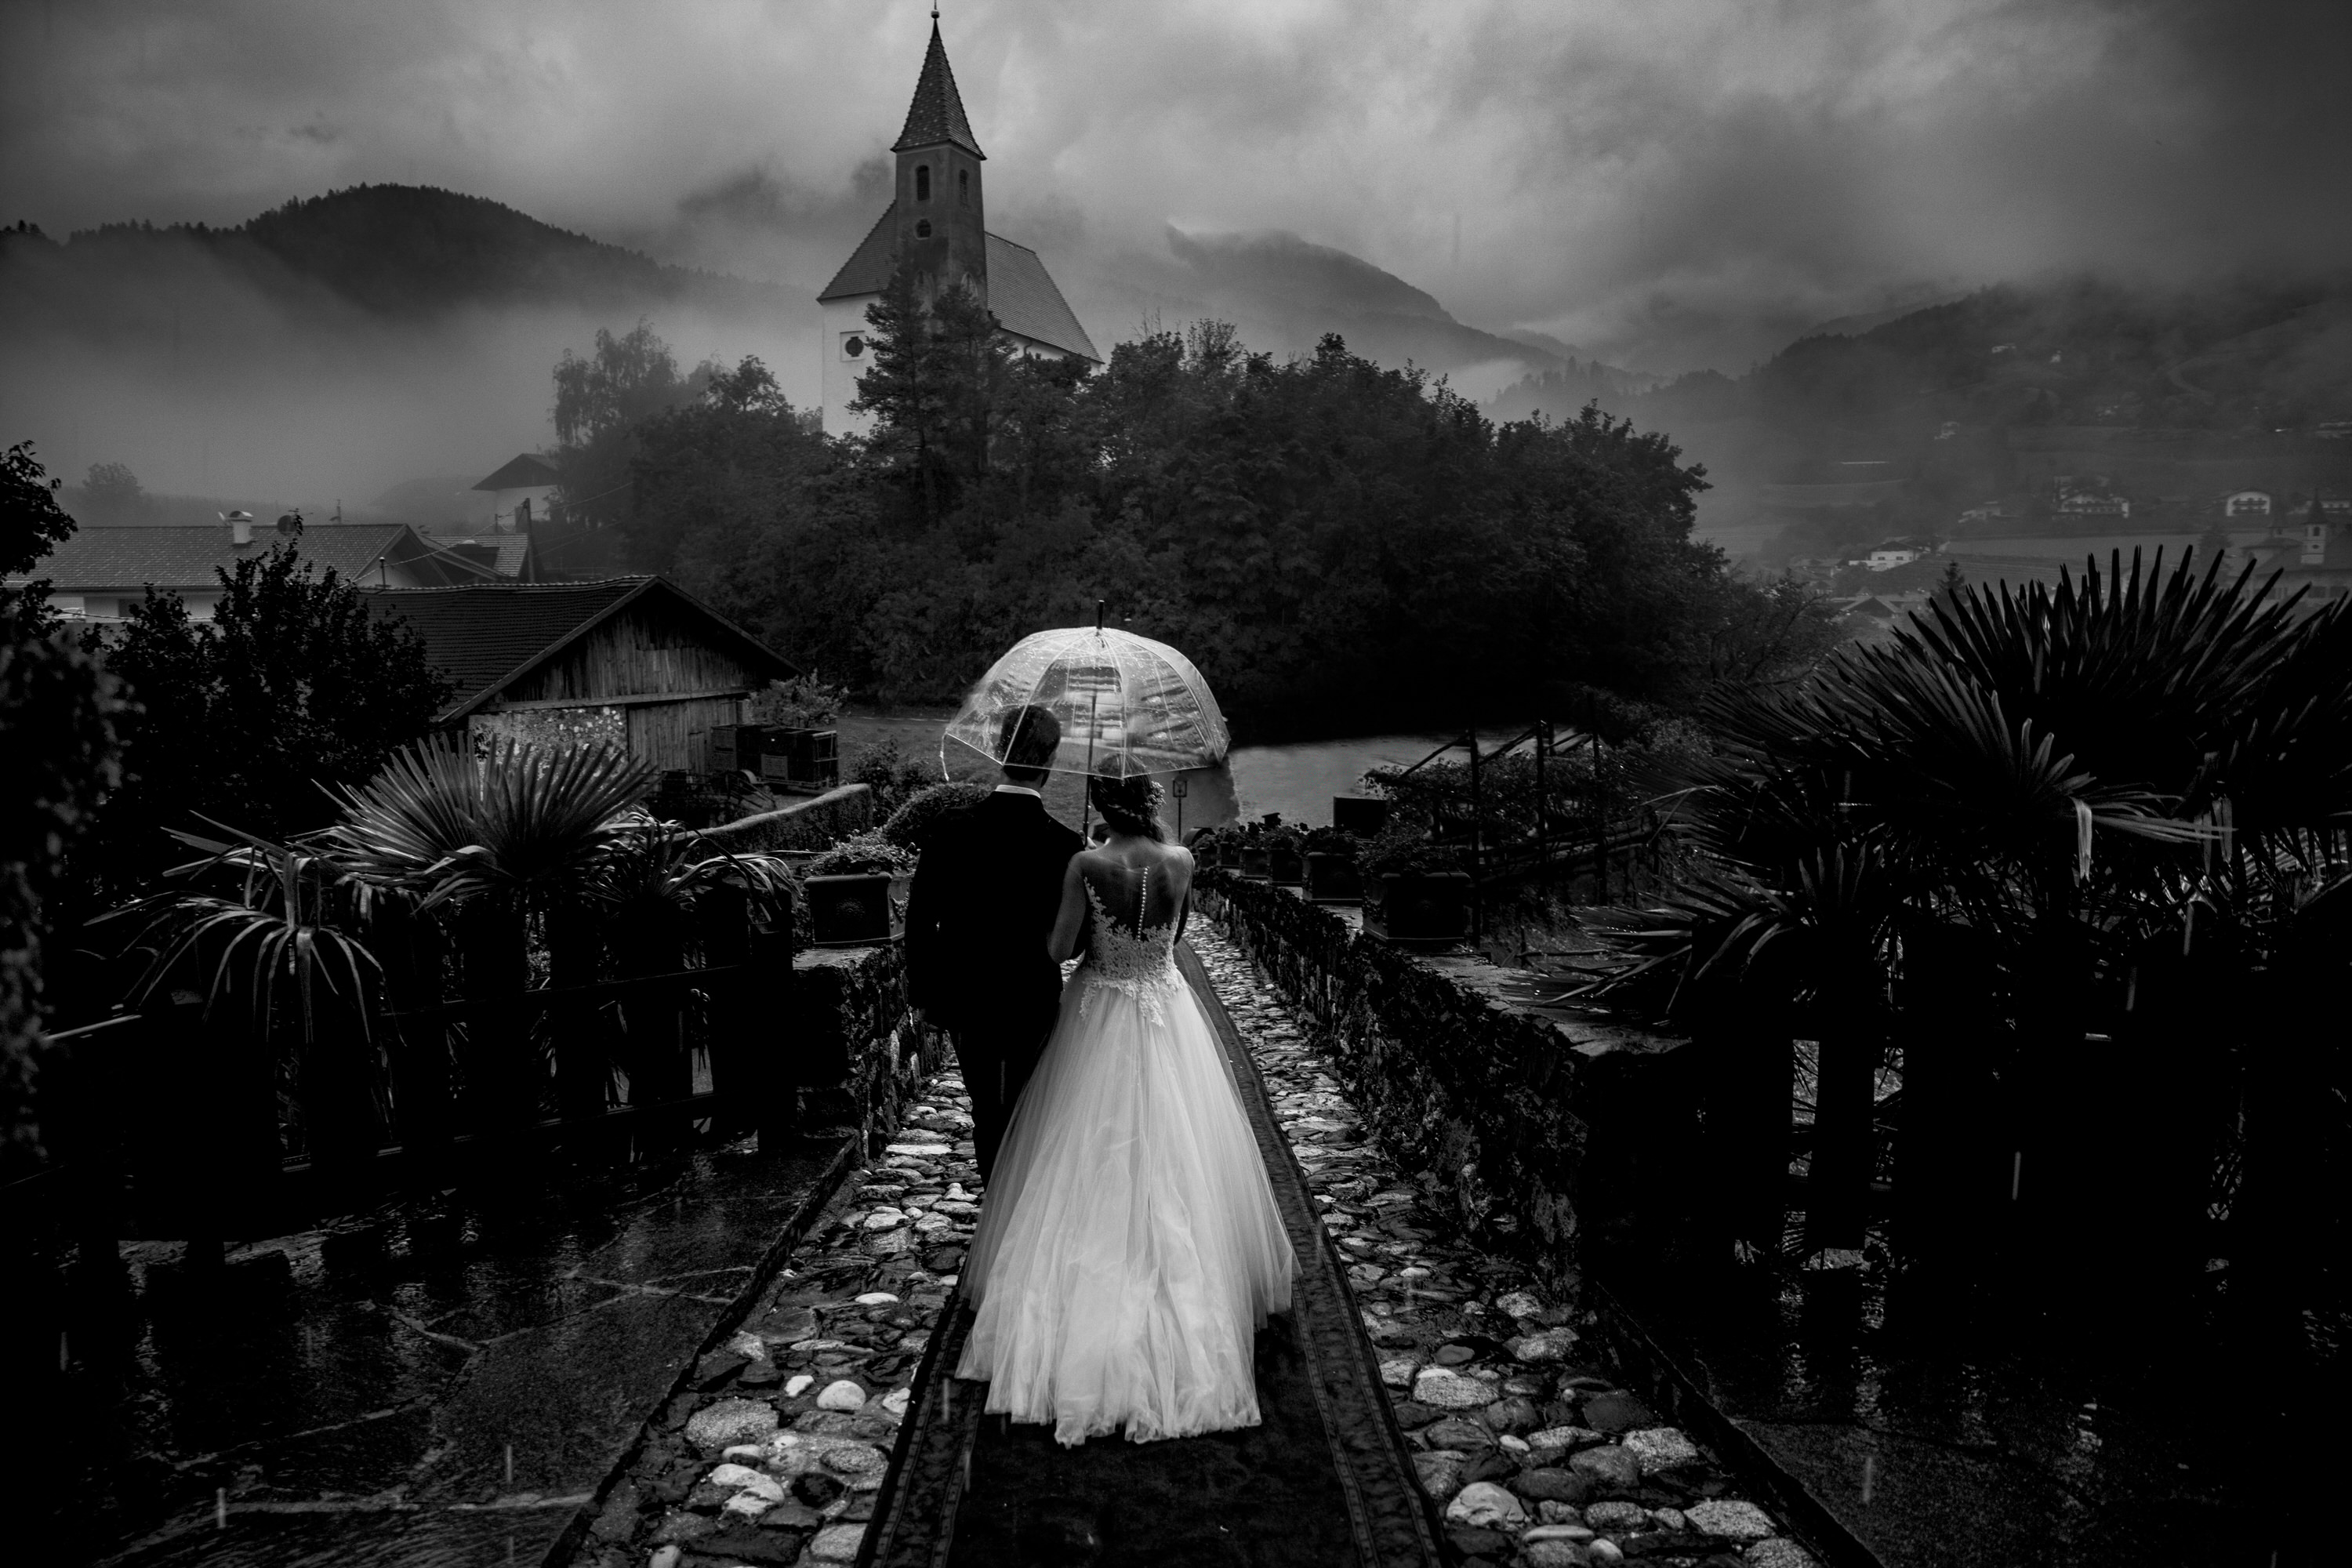 Atmospheric back of couple portrait in Merano Italy - photo by Luca + Marta Gallizio Photography